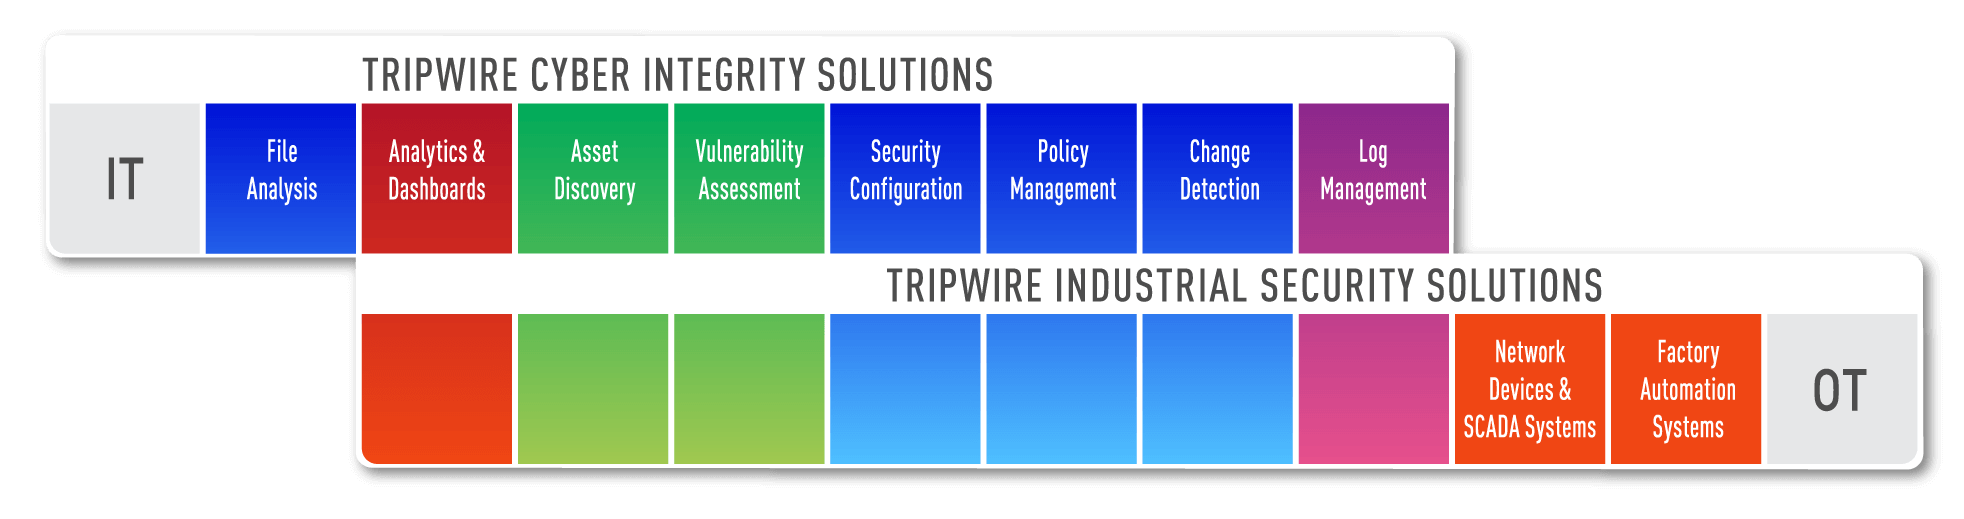 Enterprise Cybersecurity & Cybersecurity Tools | Tripwire